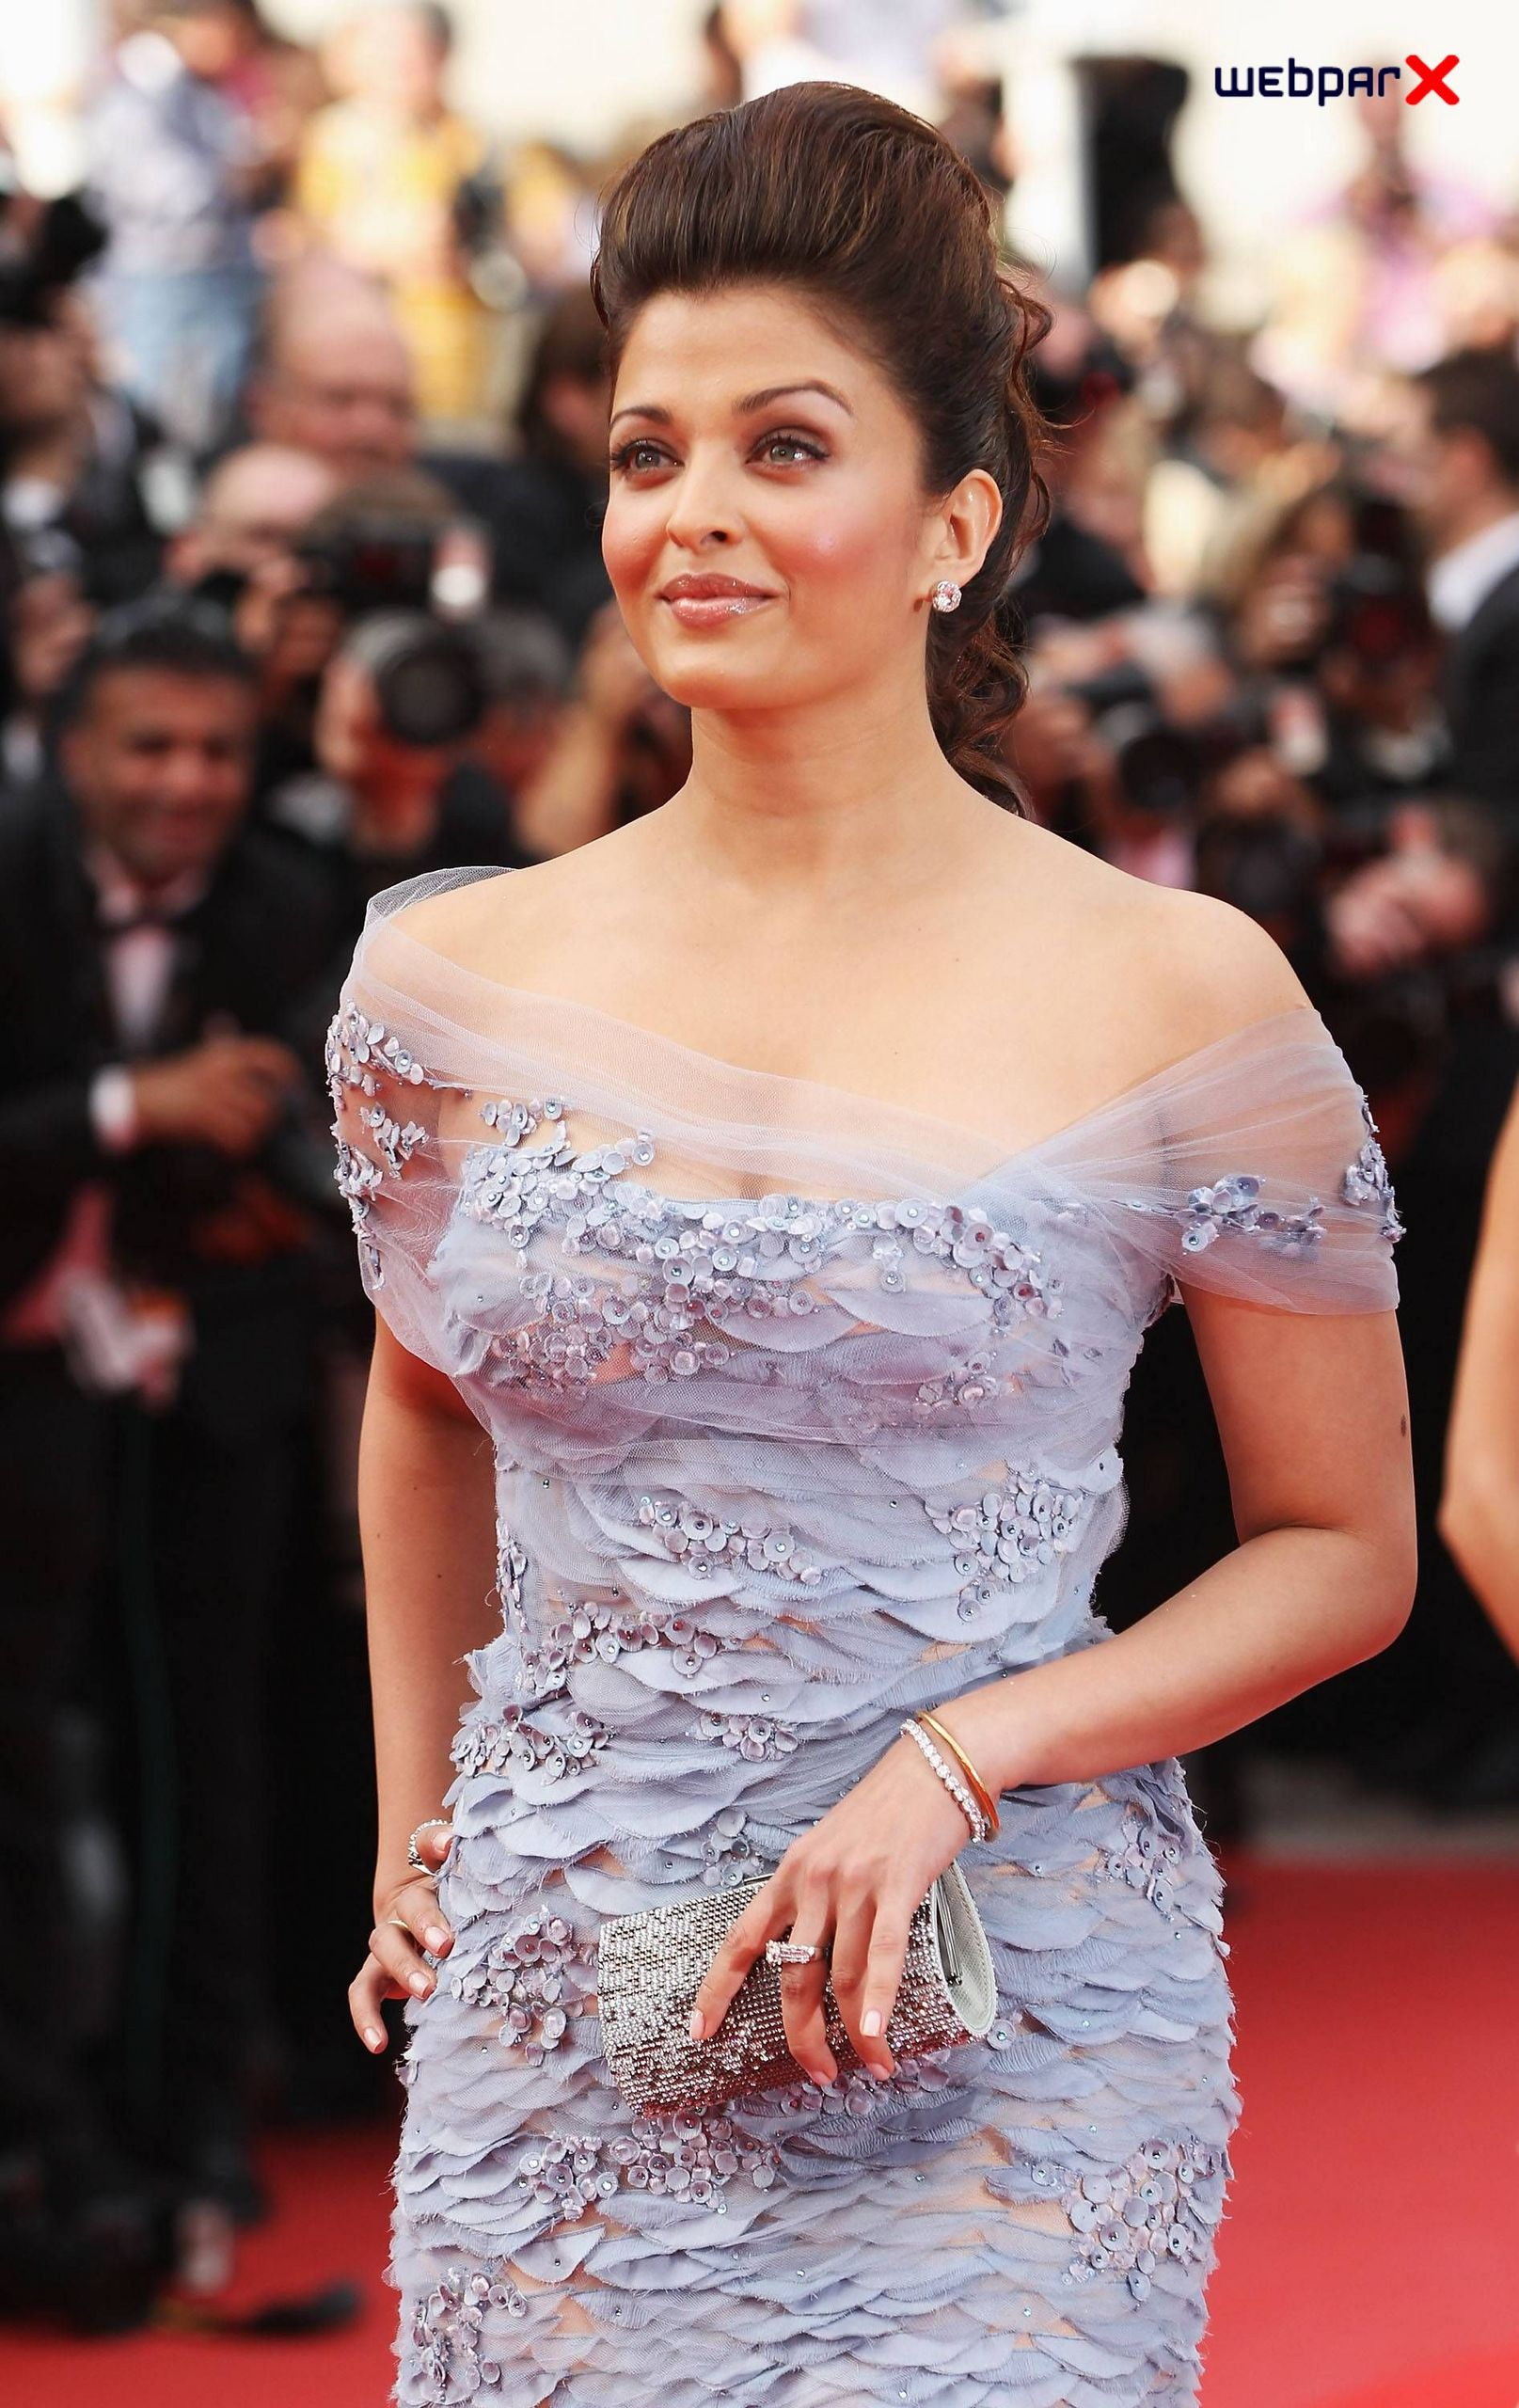 Aishwarya Rai Full HD Images - Webparx